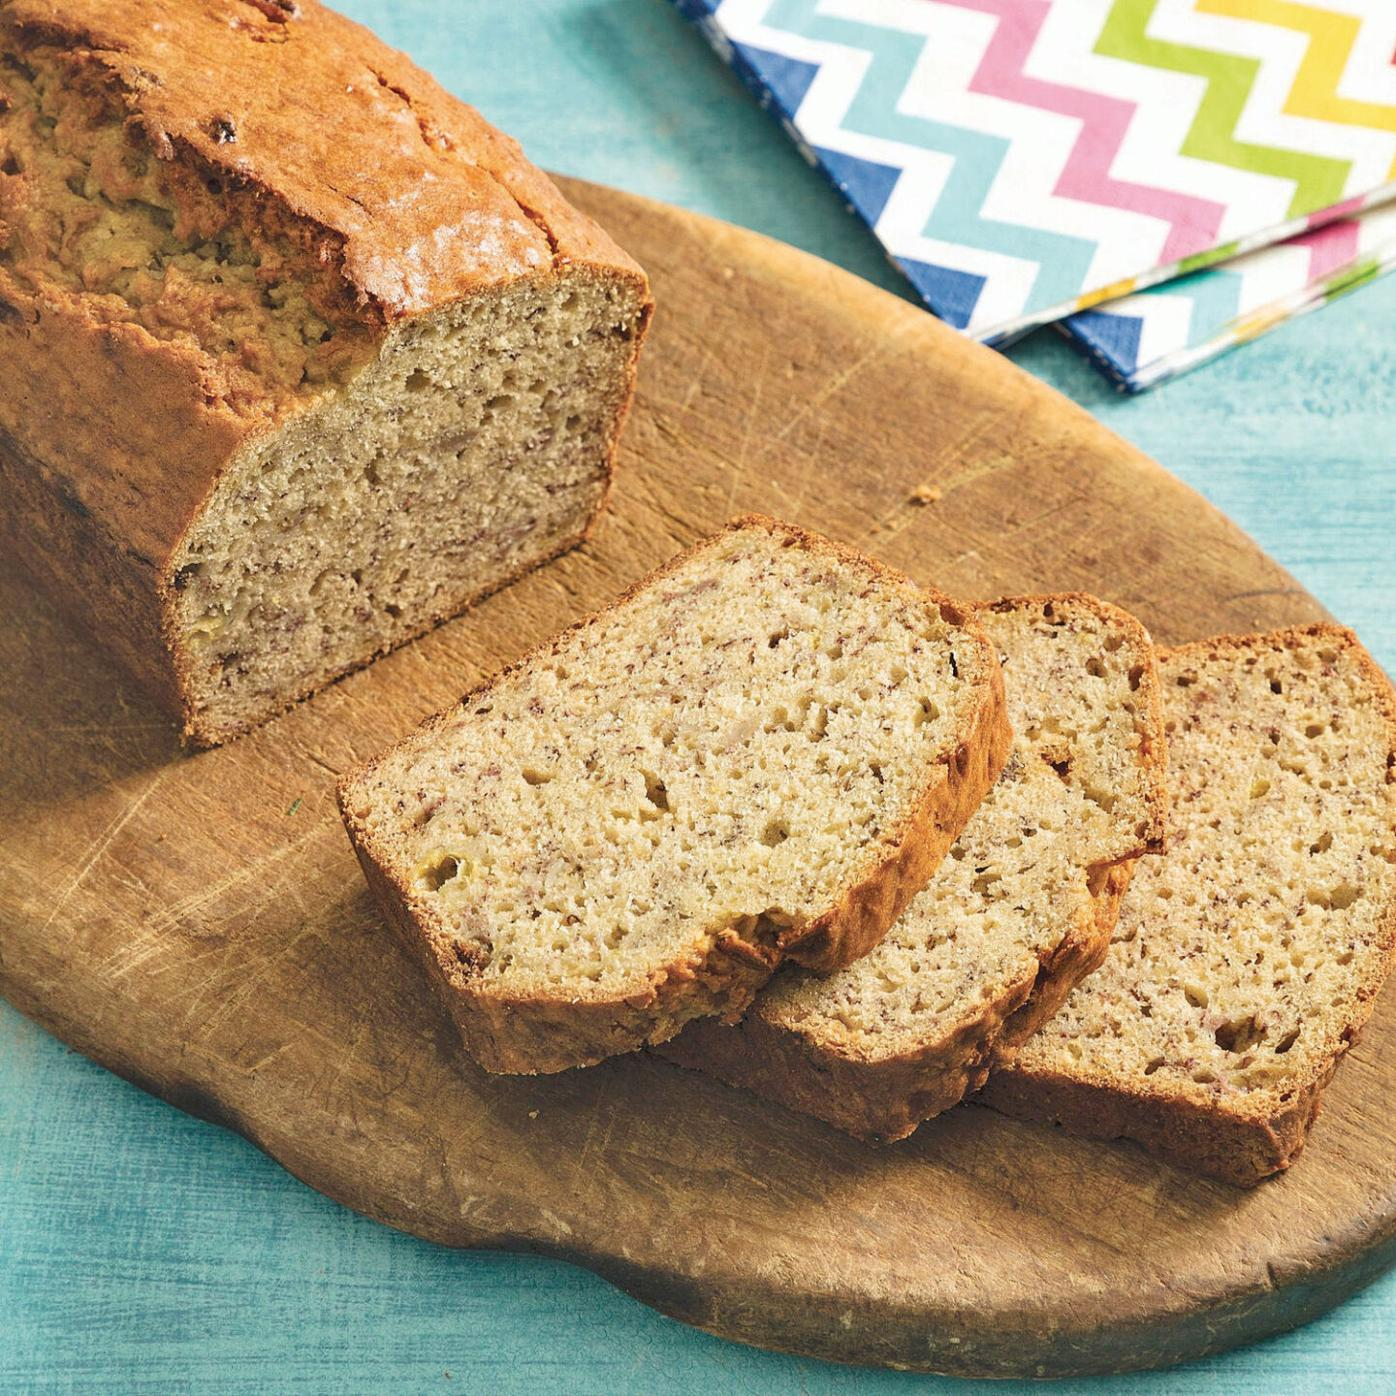 Dress up banana bread with nuts, spices or chocolate